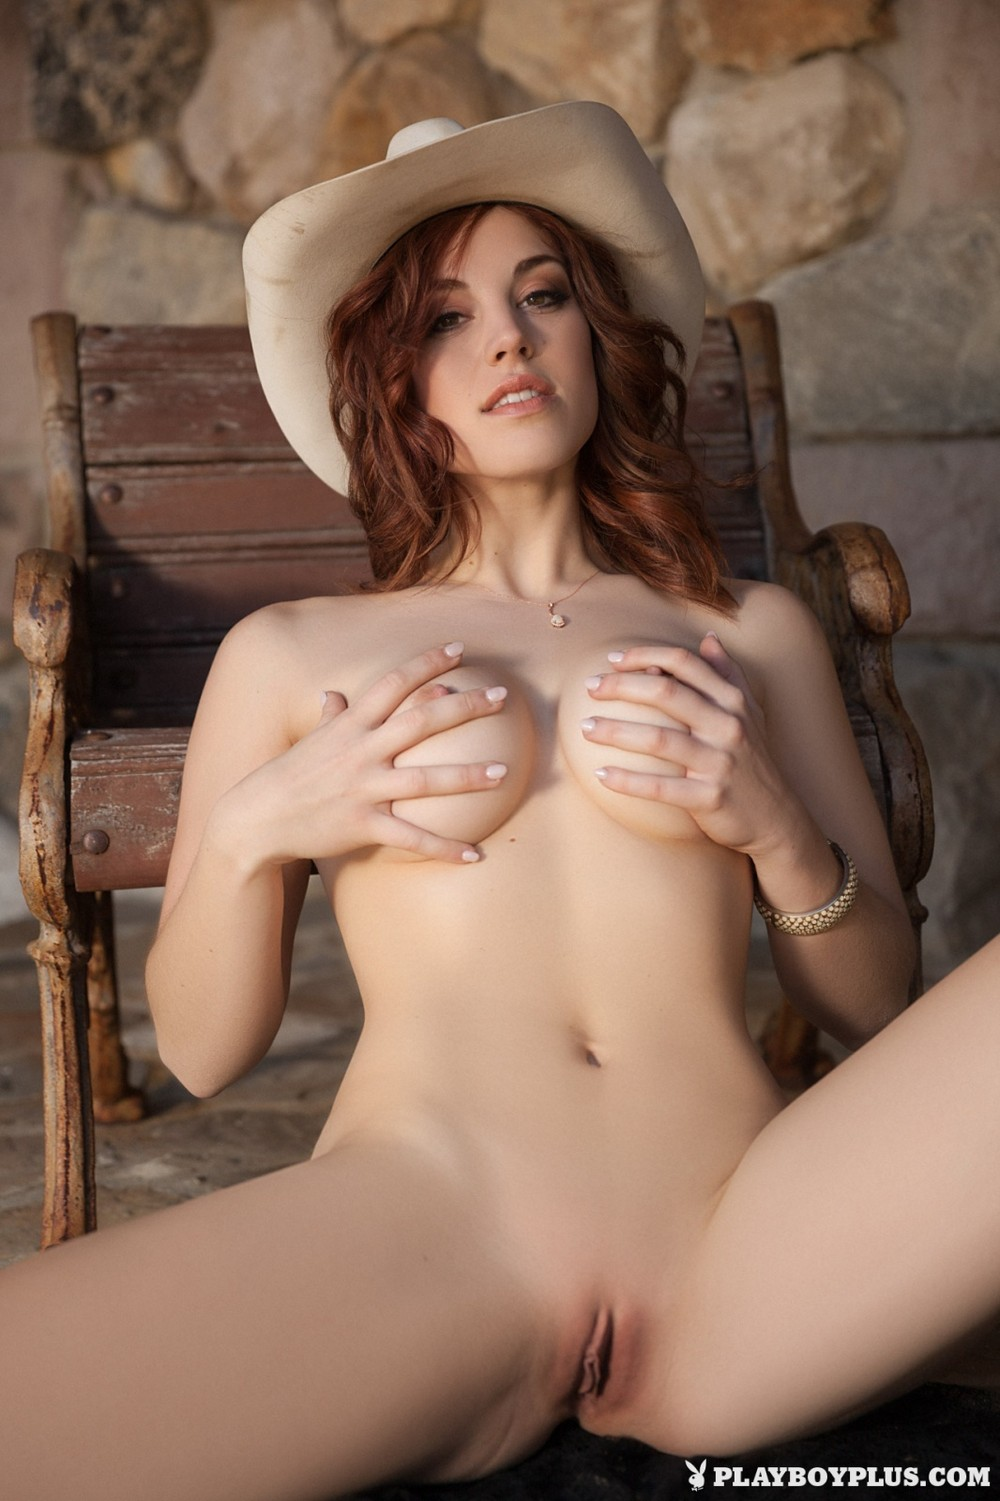 Molly fitzgerald nude